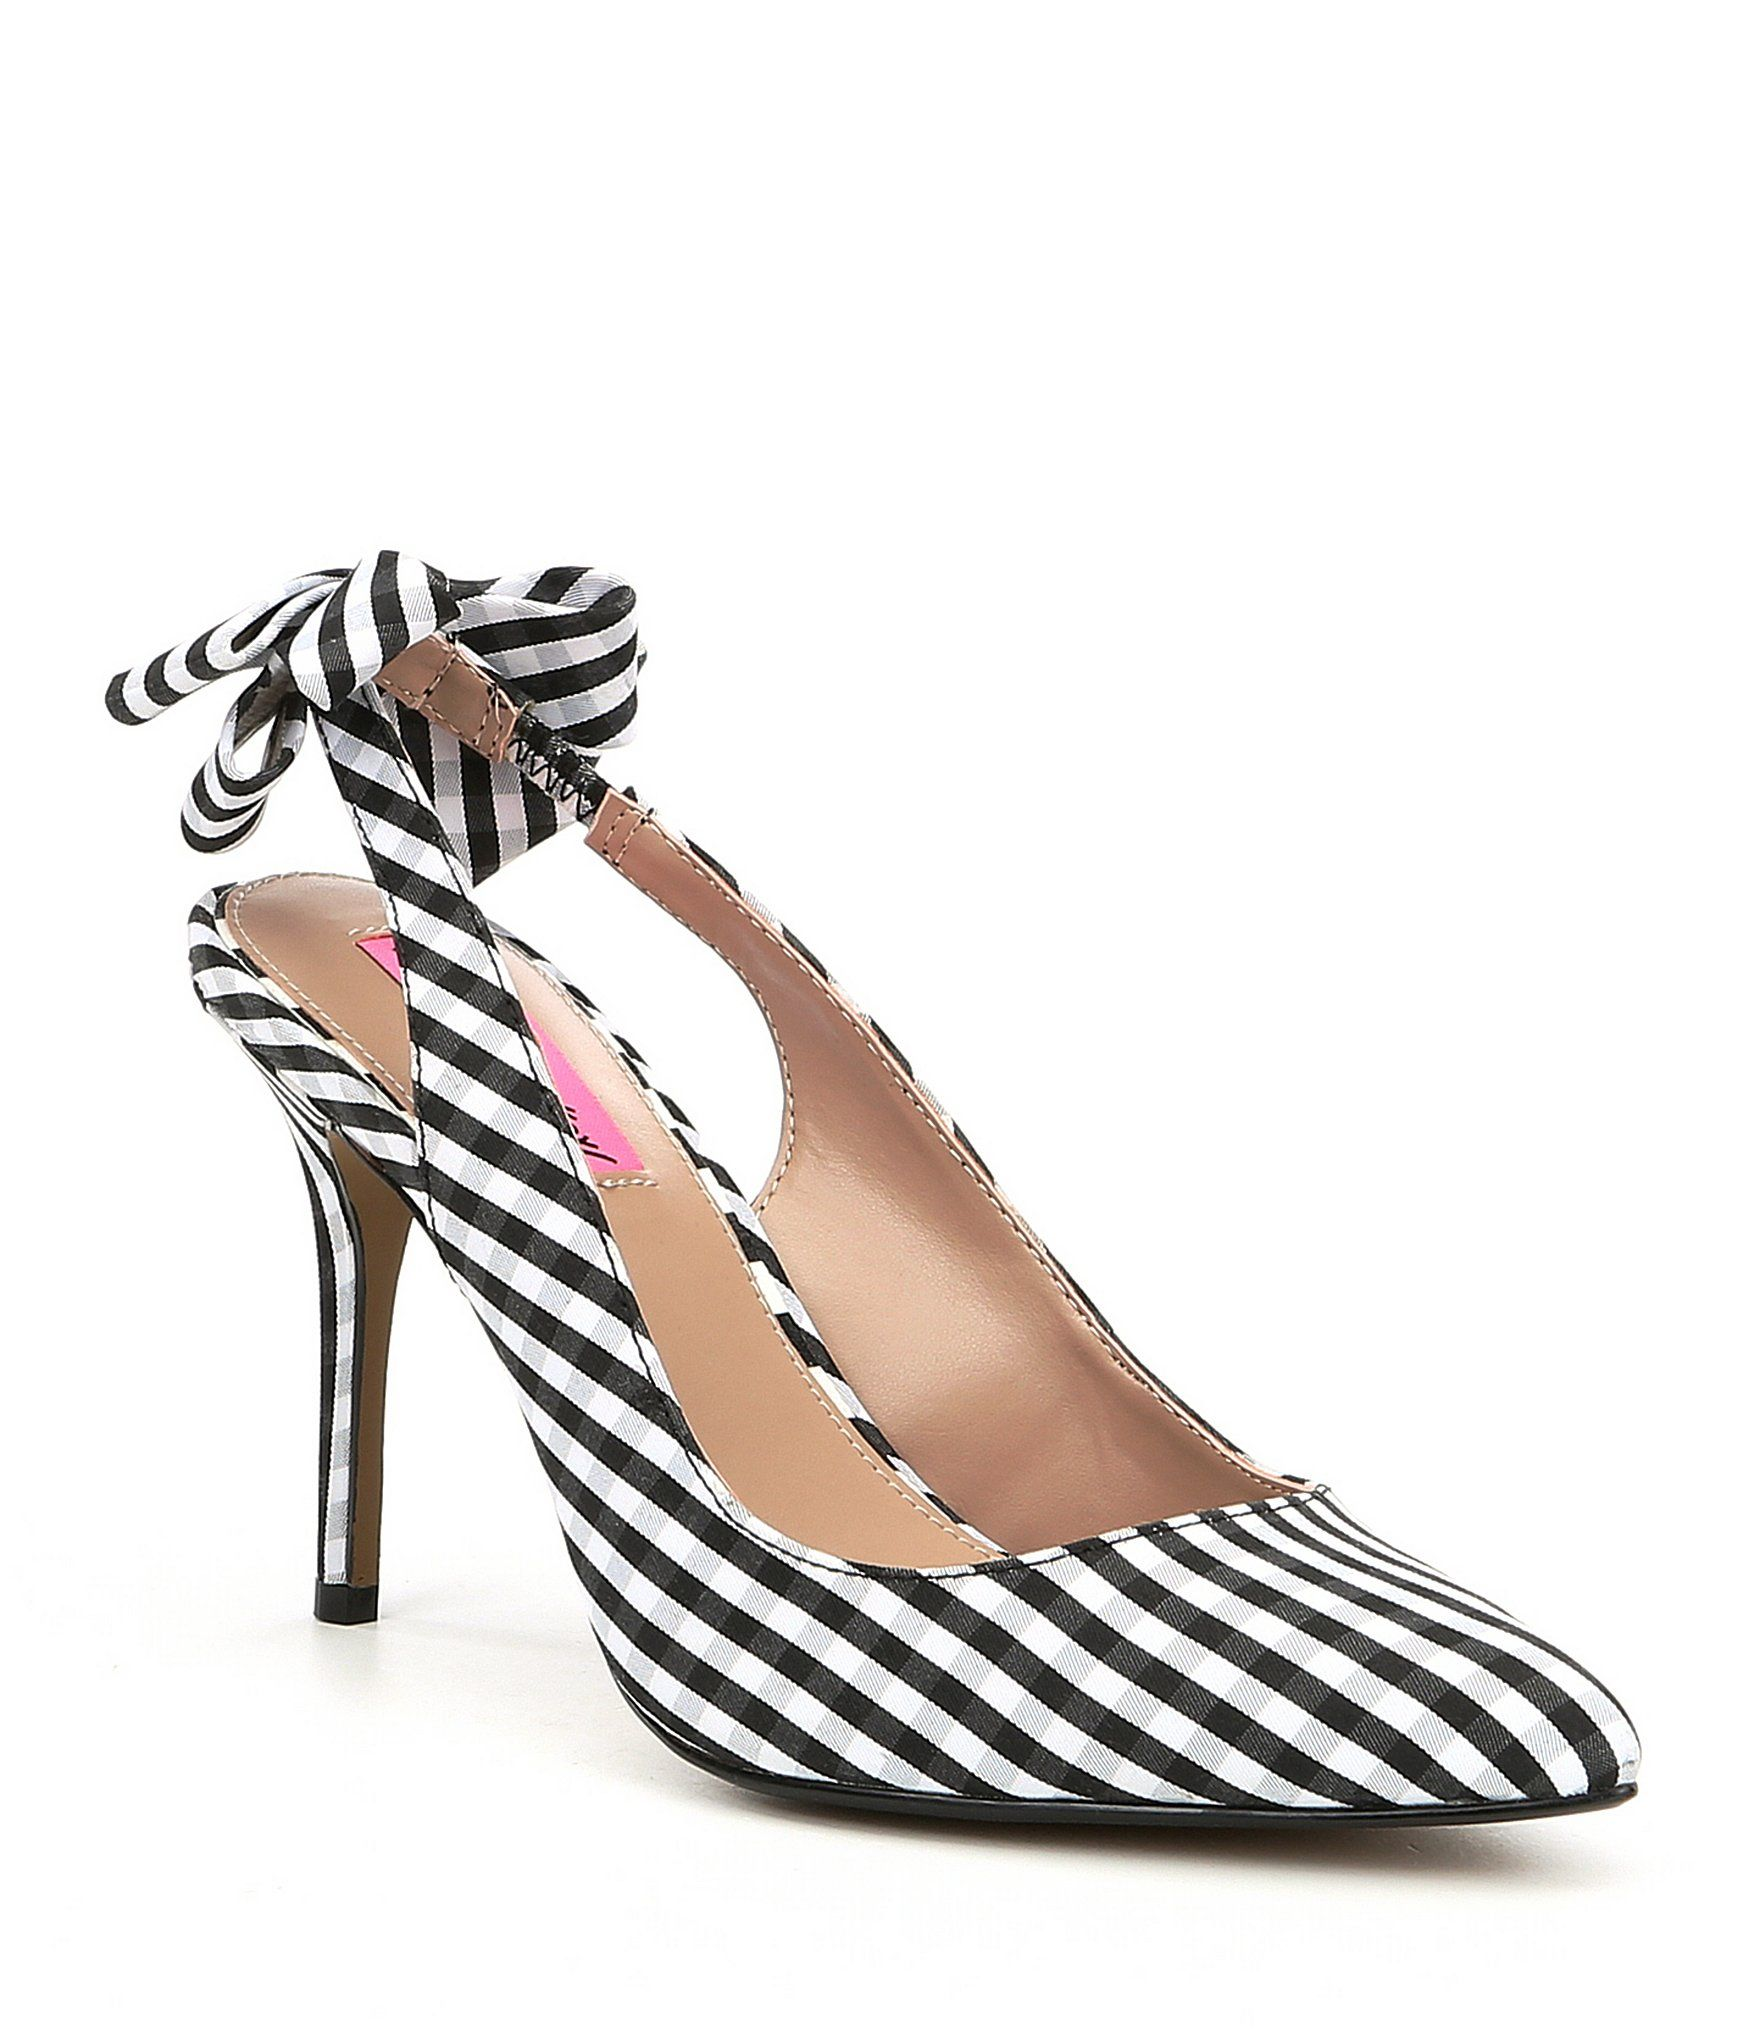 82cc9e5085b Shop for Betsey Johnson Ginjer Gingham Bow Slingback Pumps at Dillards.com.  Visit Dillards.com to find clothing